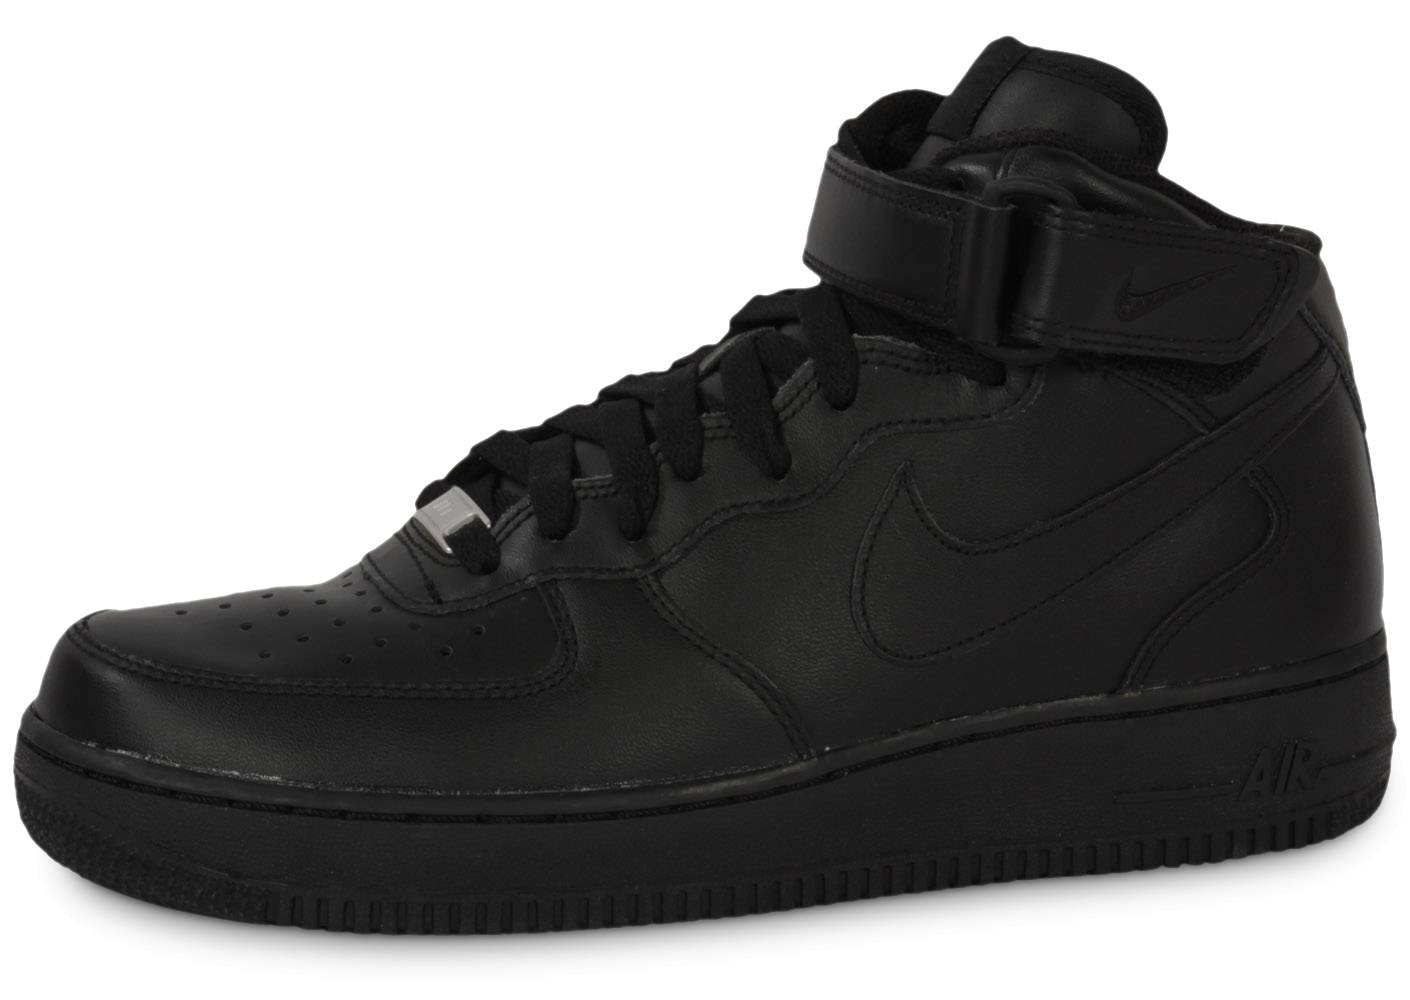 Nike Homme Air Force 1 Mid 07 Noire Baskets 41